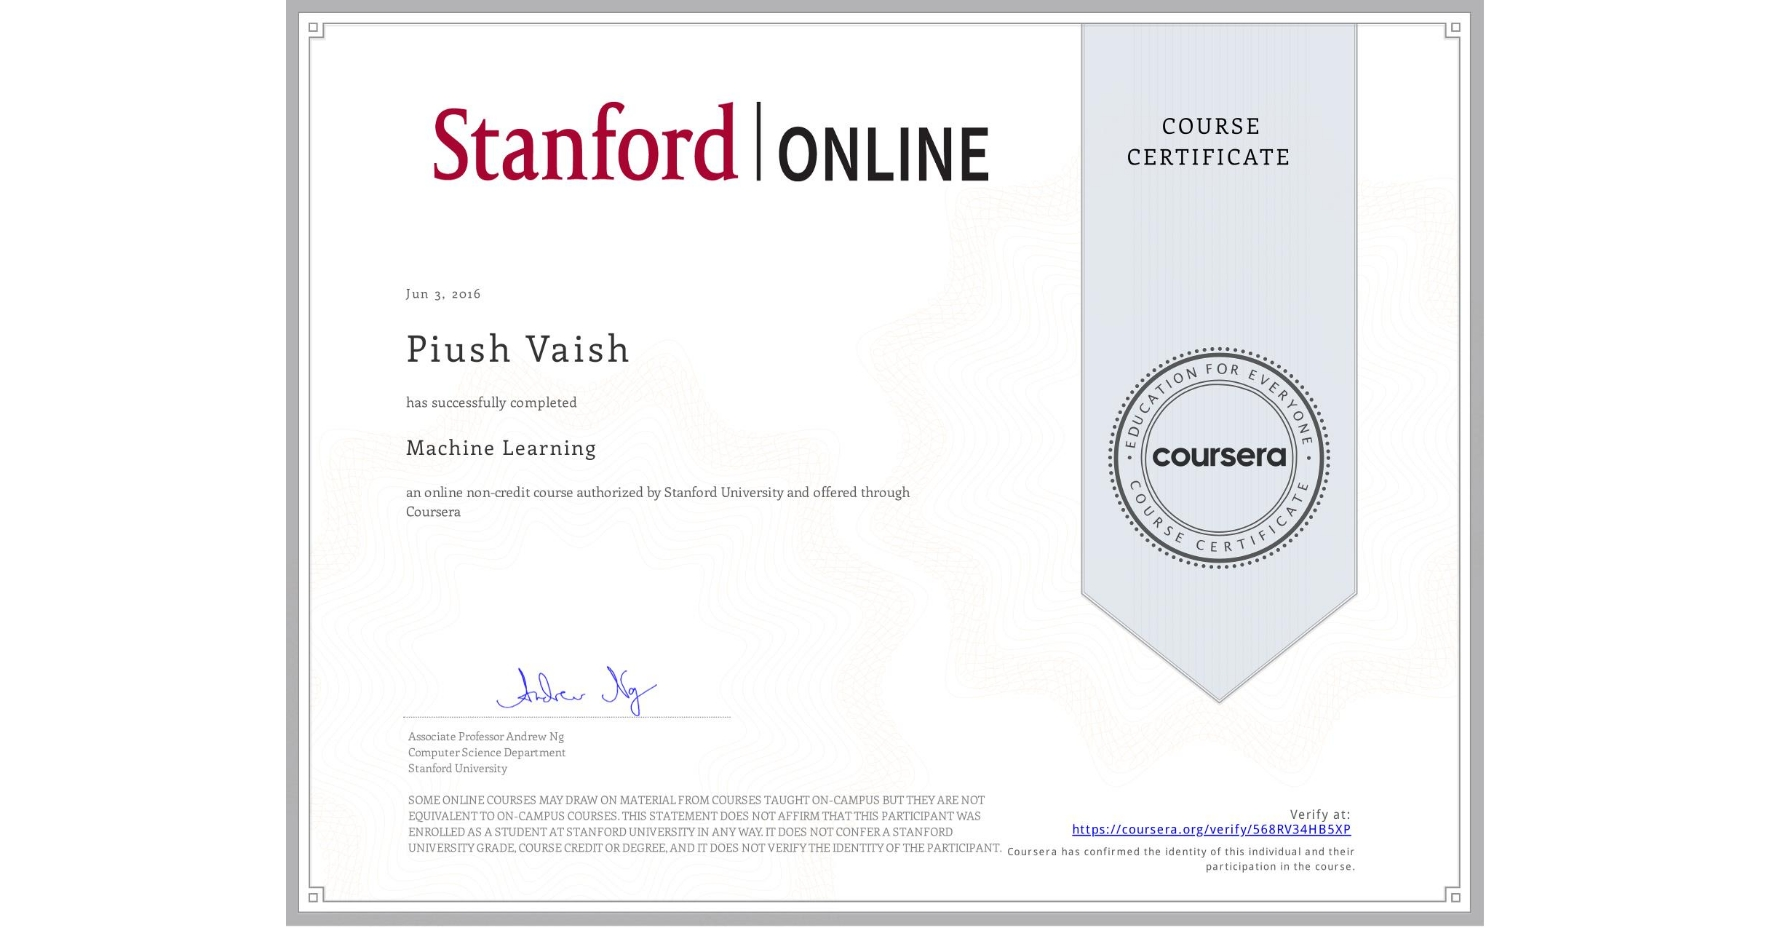 View certificate for Piush Vaish, Machine Learning, an online non-credit course authorized by Stanford University and offered through Coursera